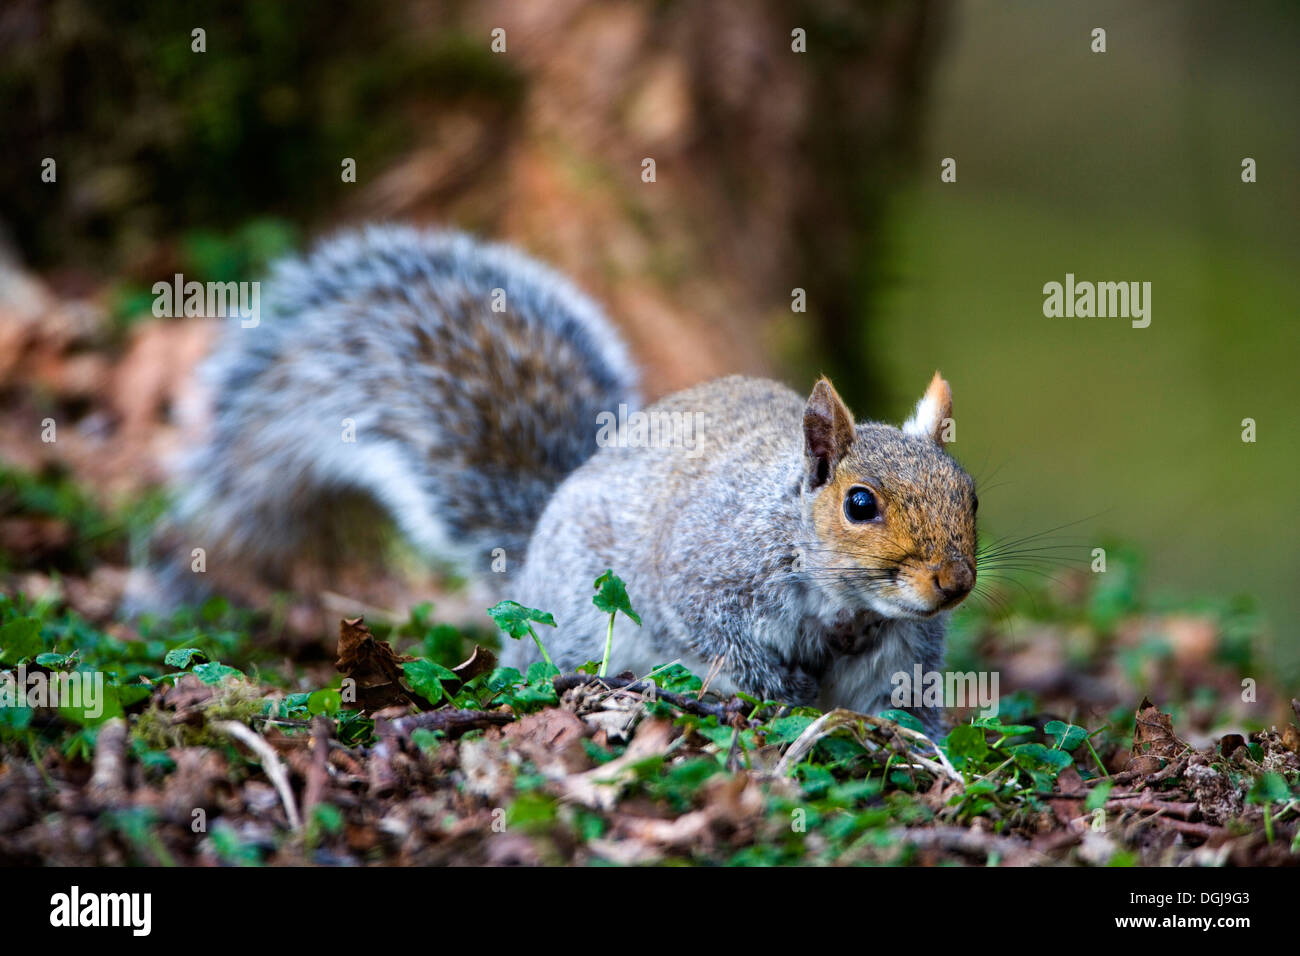 A grey squirrel scurries along the woodland floor. - Stock Image